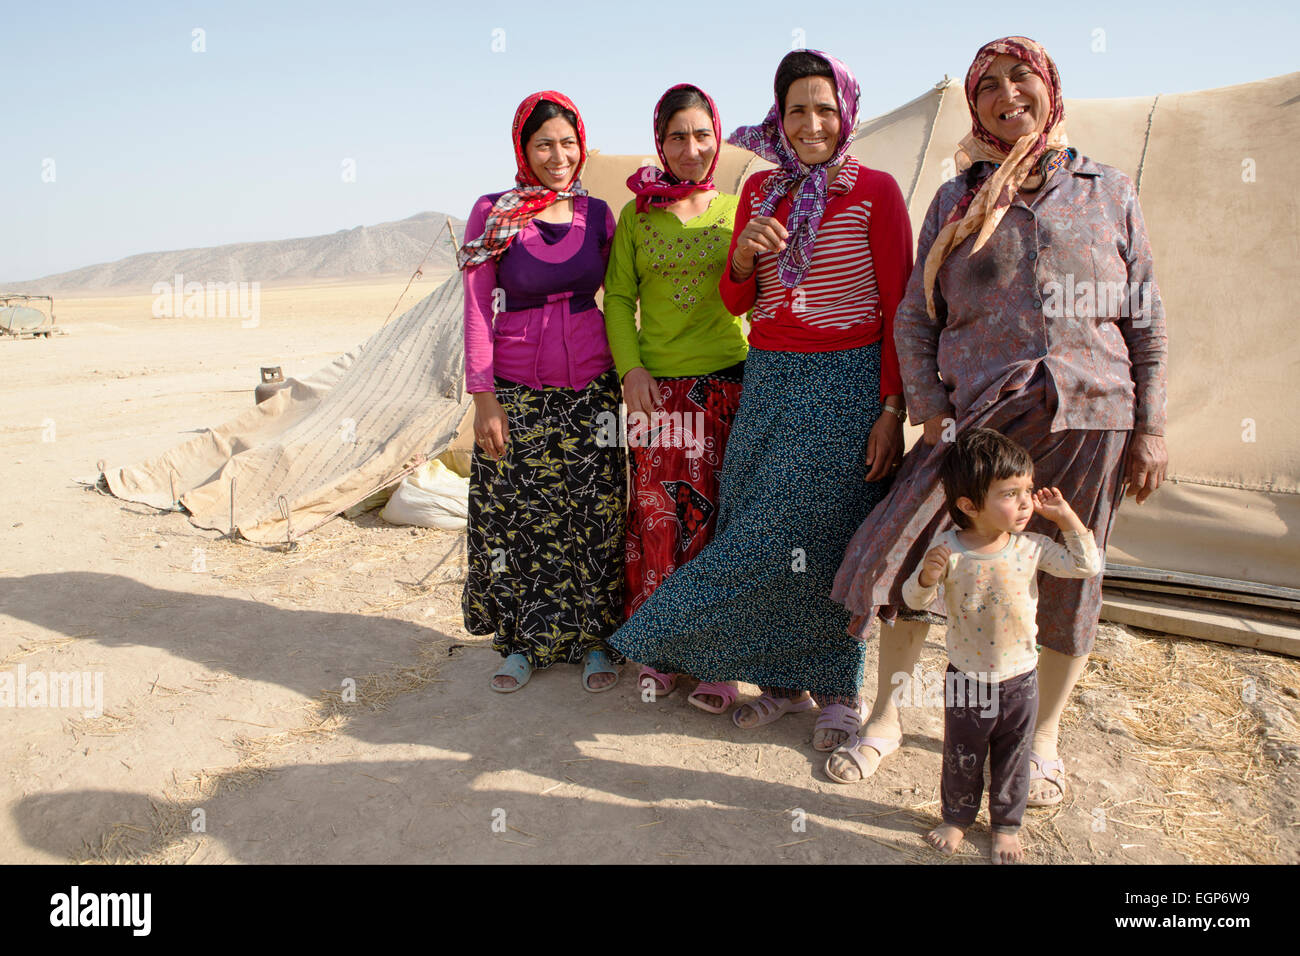 Indigenous nomadic people in Golestan Park, Iran - Stock Image